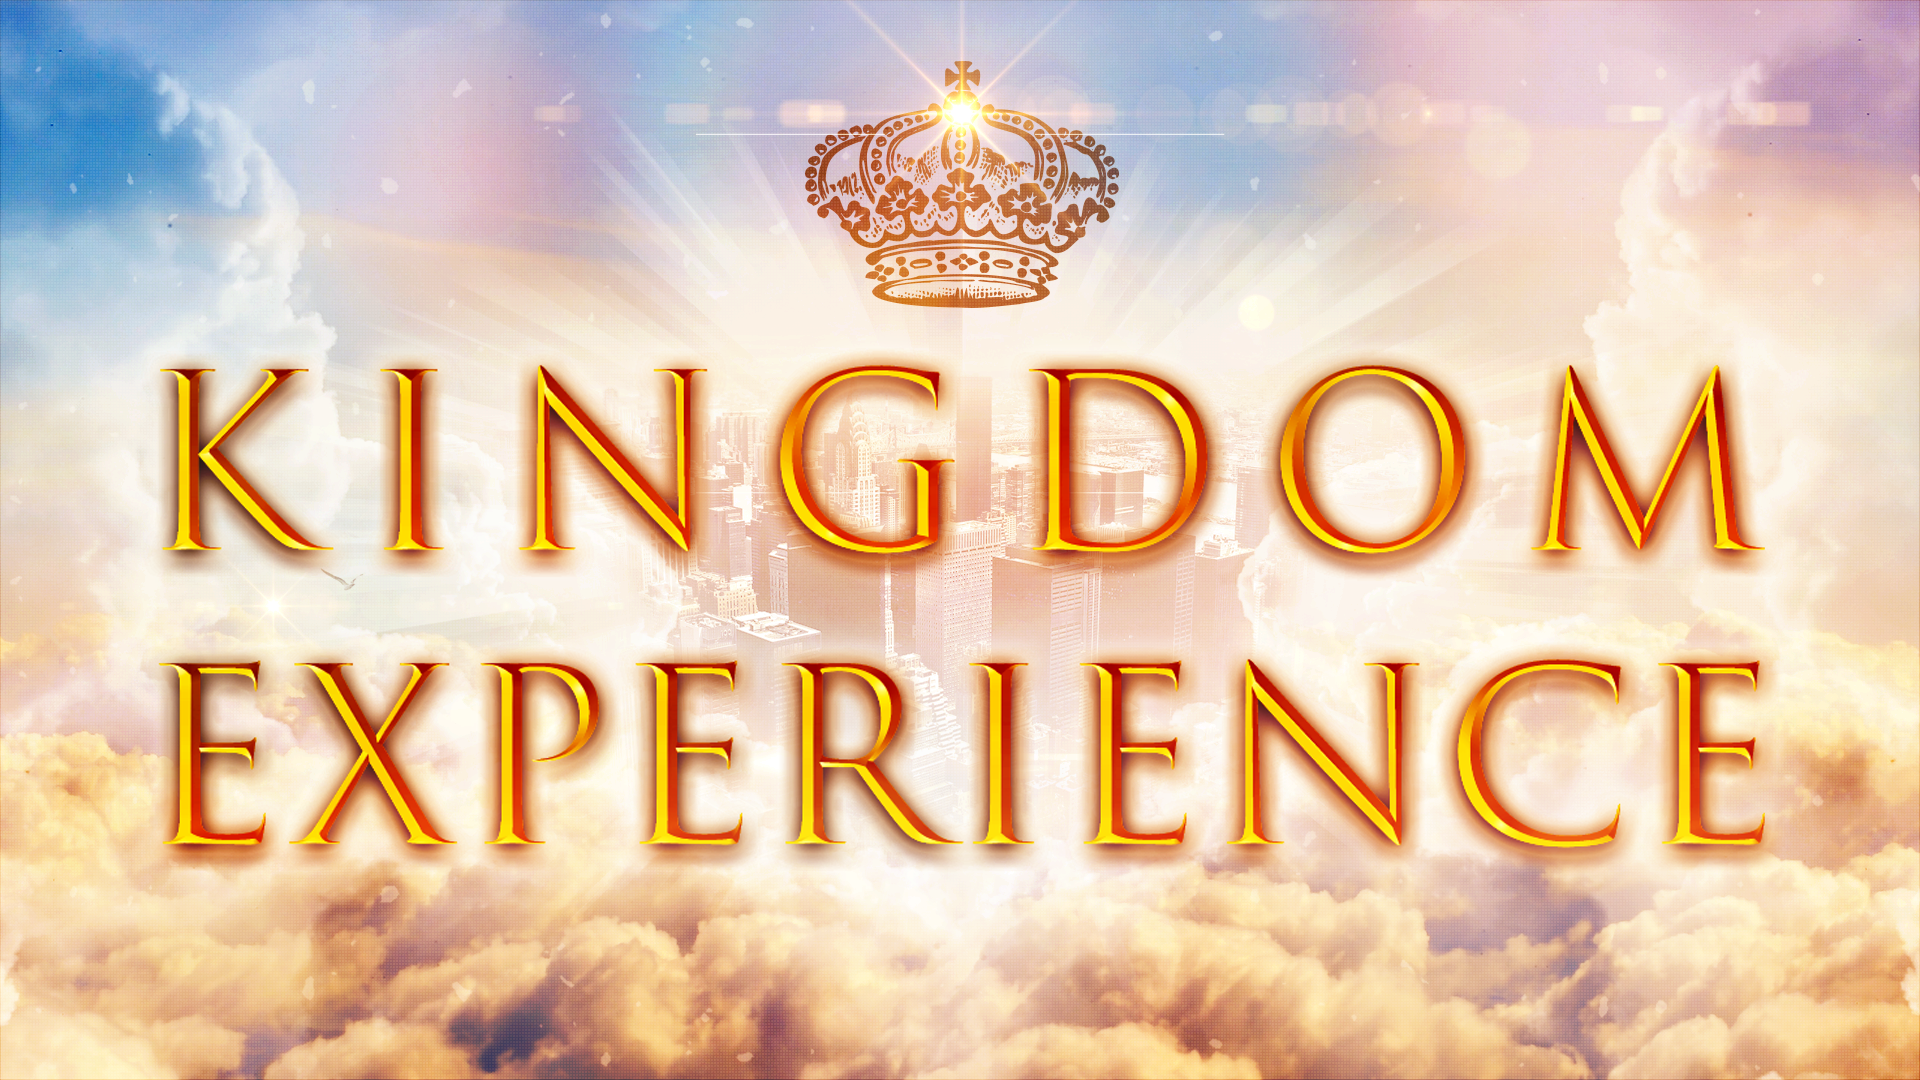 The Kingdom Experience